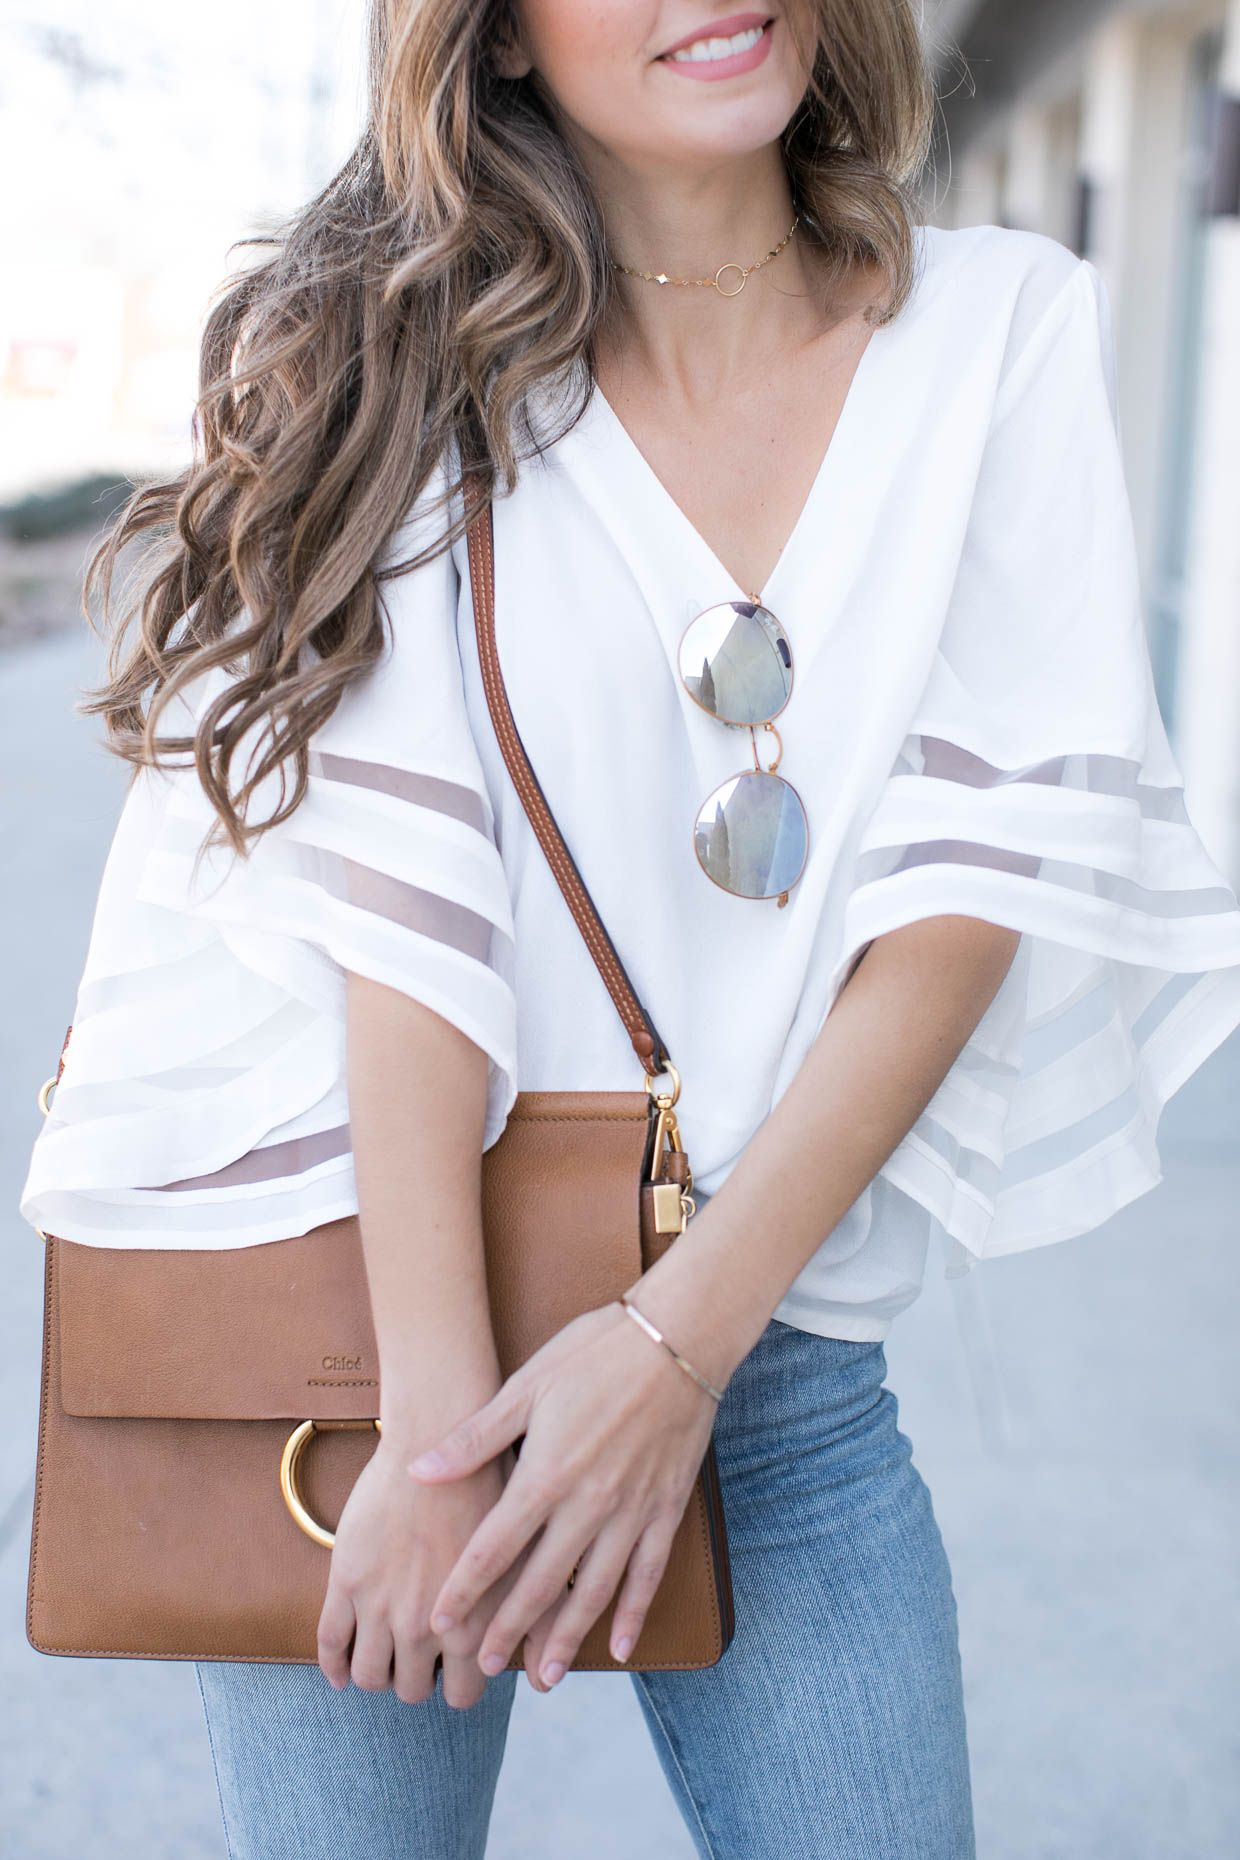 959cf0d3703659 spring outfit. white blouse. fun sleeves. big sleeves. jeans. bell sleeves.  sunglasses. satchel. cute outfit. style inspiration